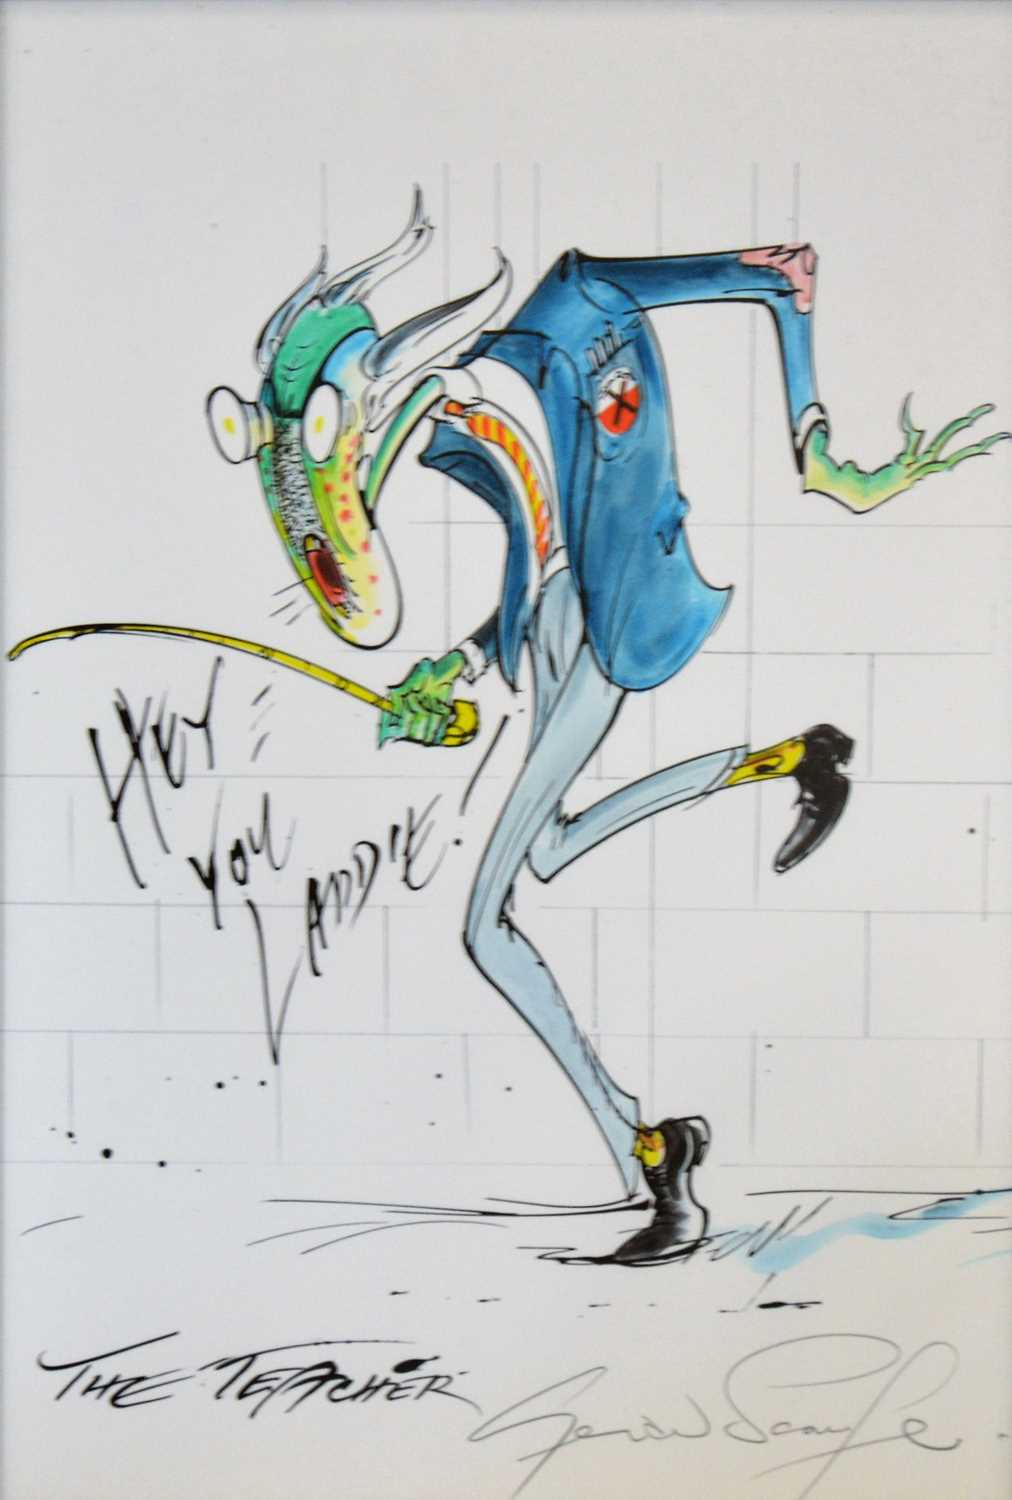 Lot 83-Gerald Scarfe; The Teacher, pencil signed print, art work for Pink Floyd's The Wall, framed and glazed, 37x31.5cm.